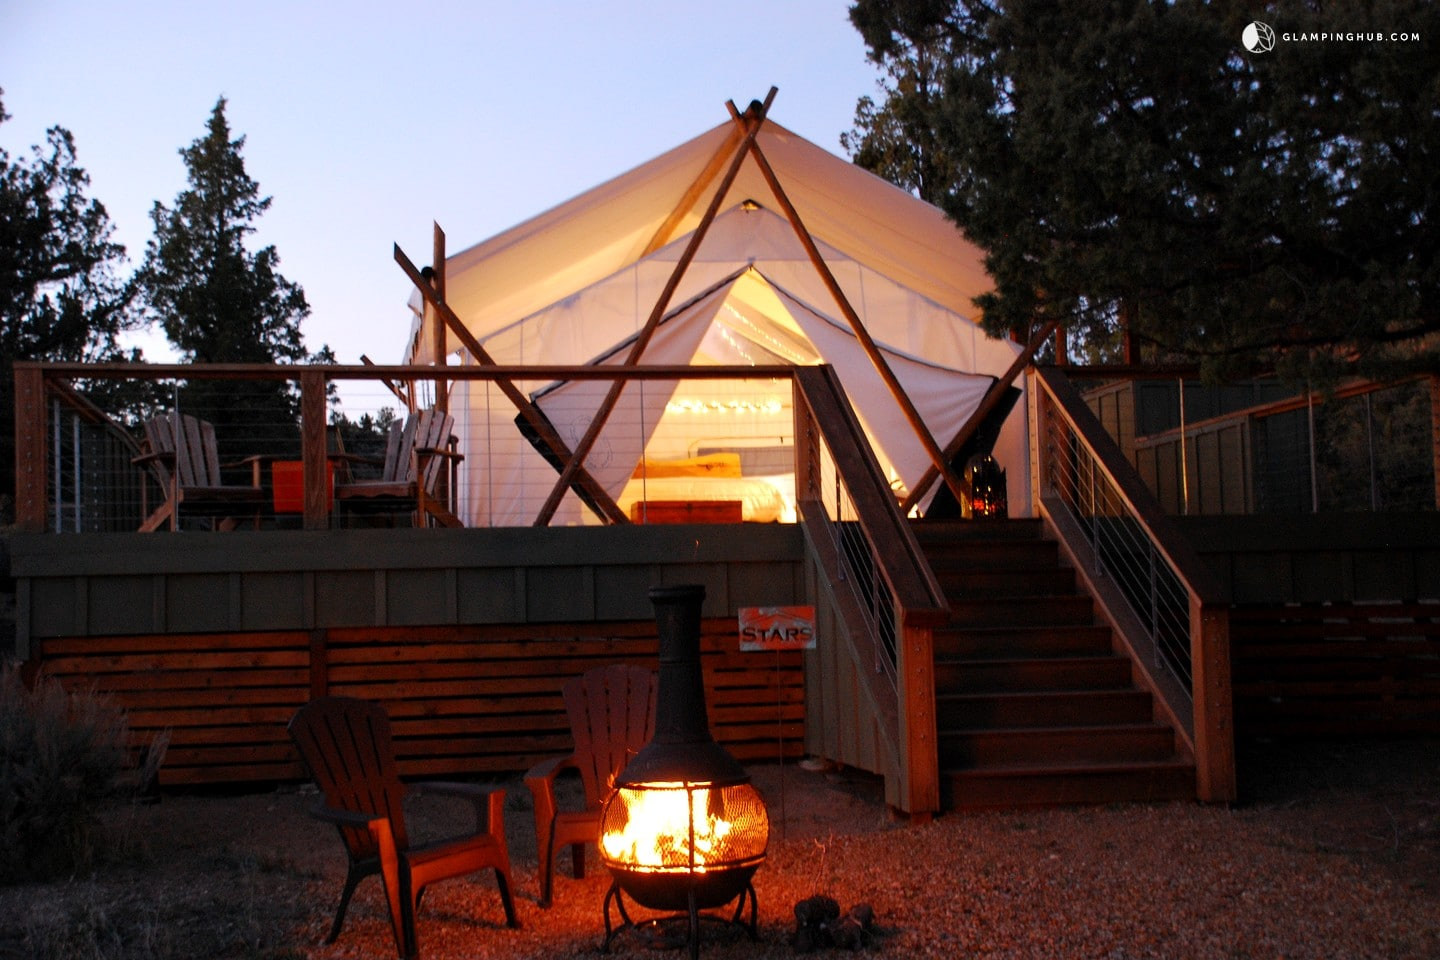 Glamping in the Pacific Northwest: Washington Safari Tent